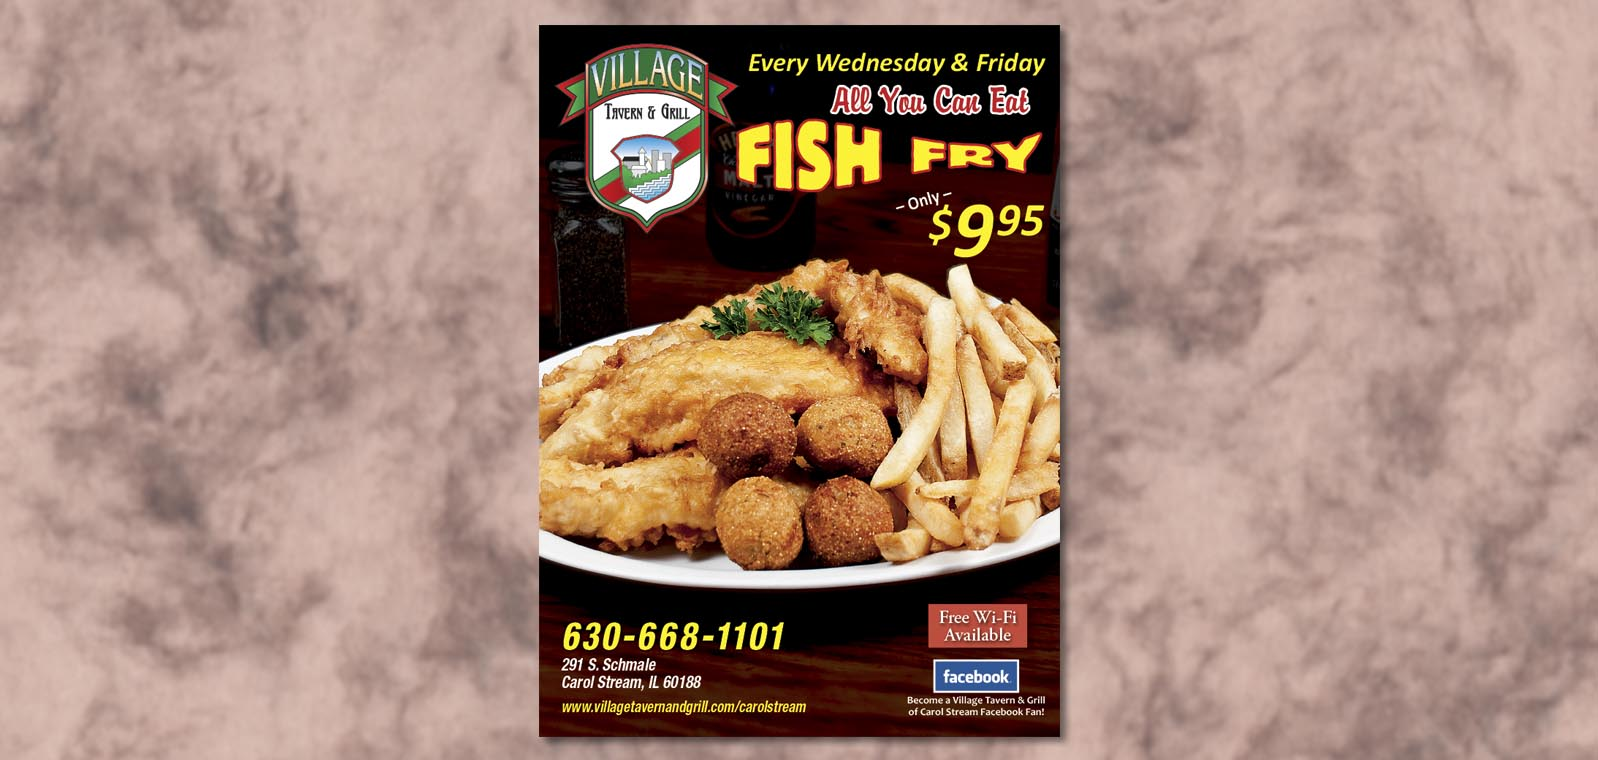 Fish Fry table tent design from Roselle Graphic Designer Controlled Color, Inc.